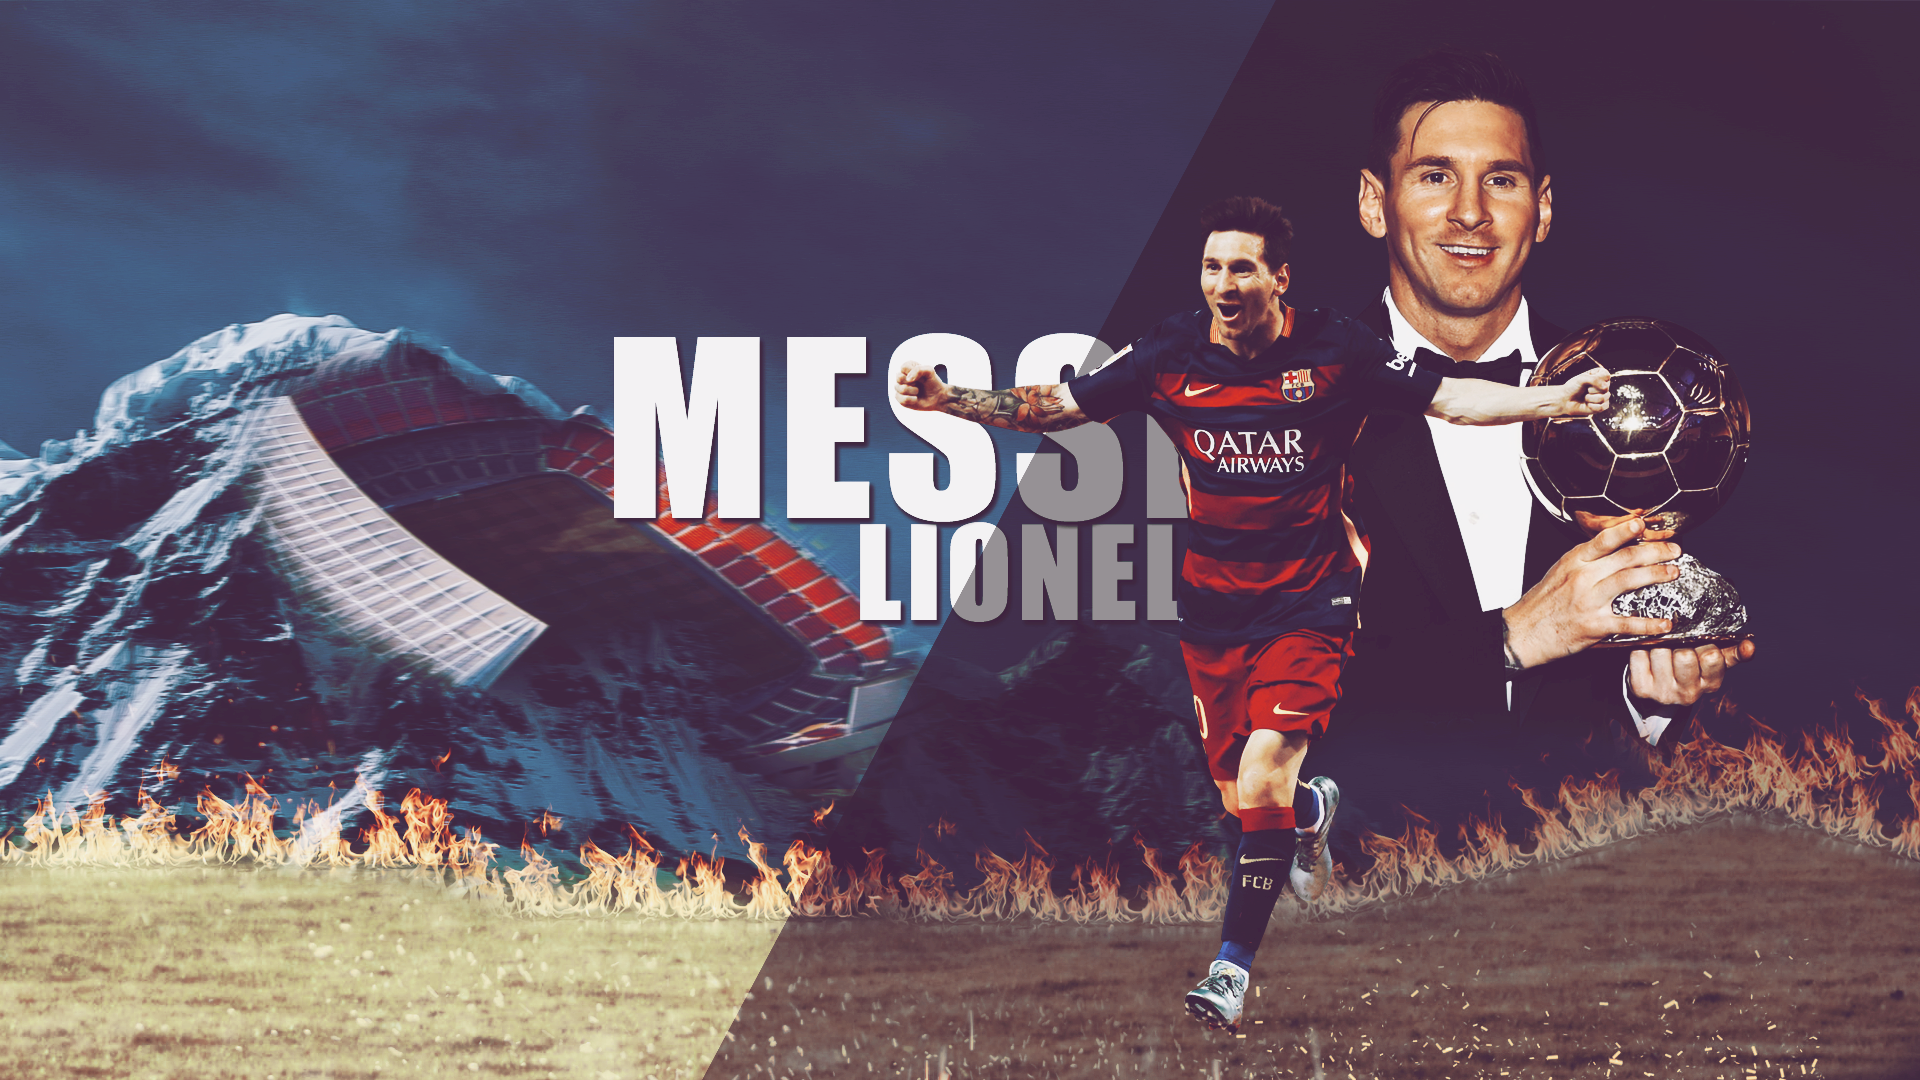 Lionel Messi 2016 Balon D Or Winner Wallpaper #2985 Wallpaper ...